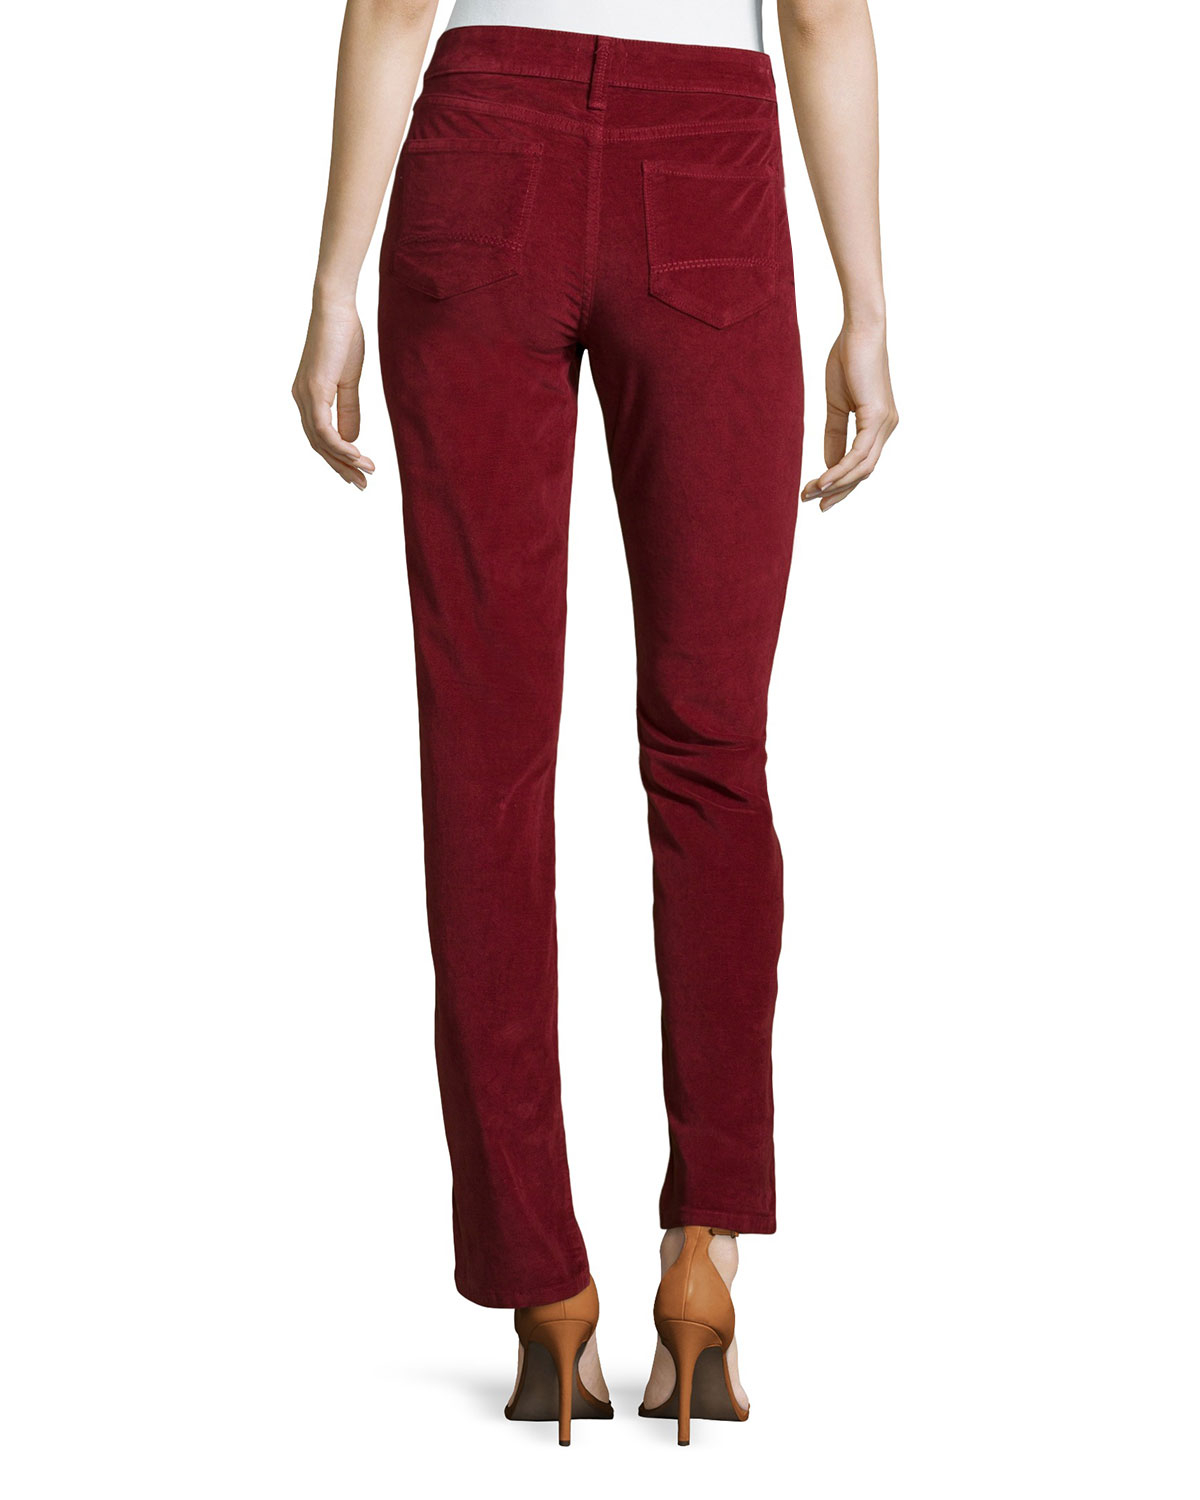 Nydj Marilyn Straight-Leg Corduroy Pants in Red | Lyst